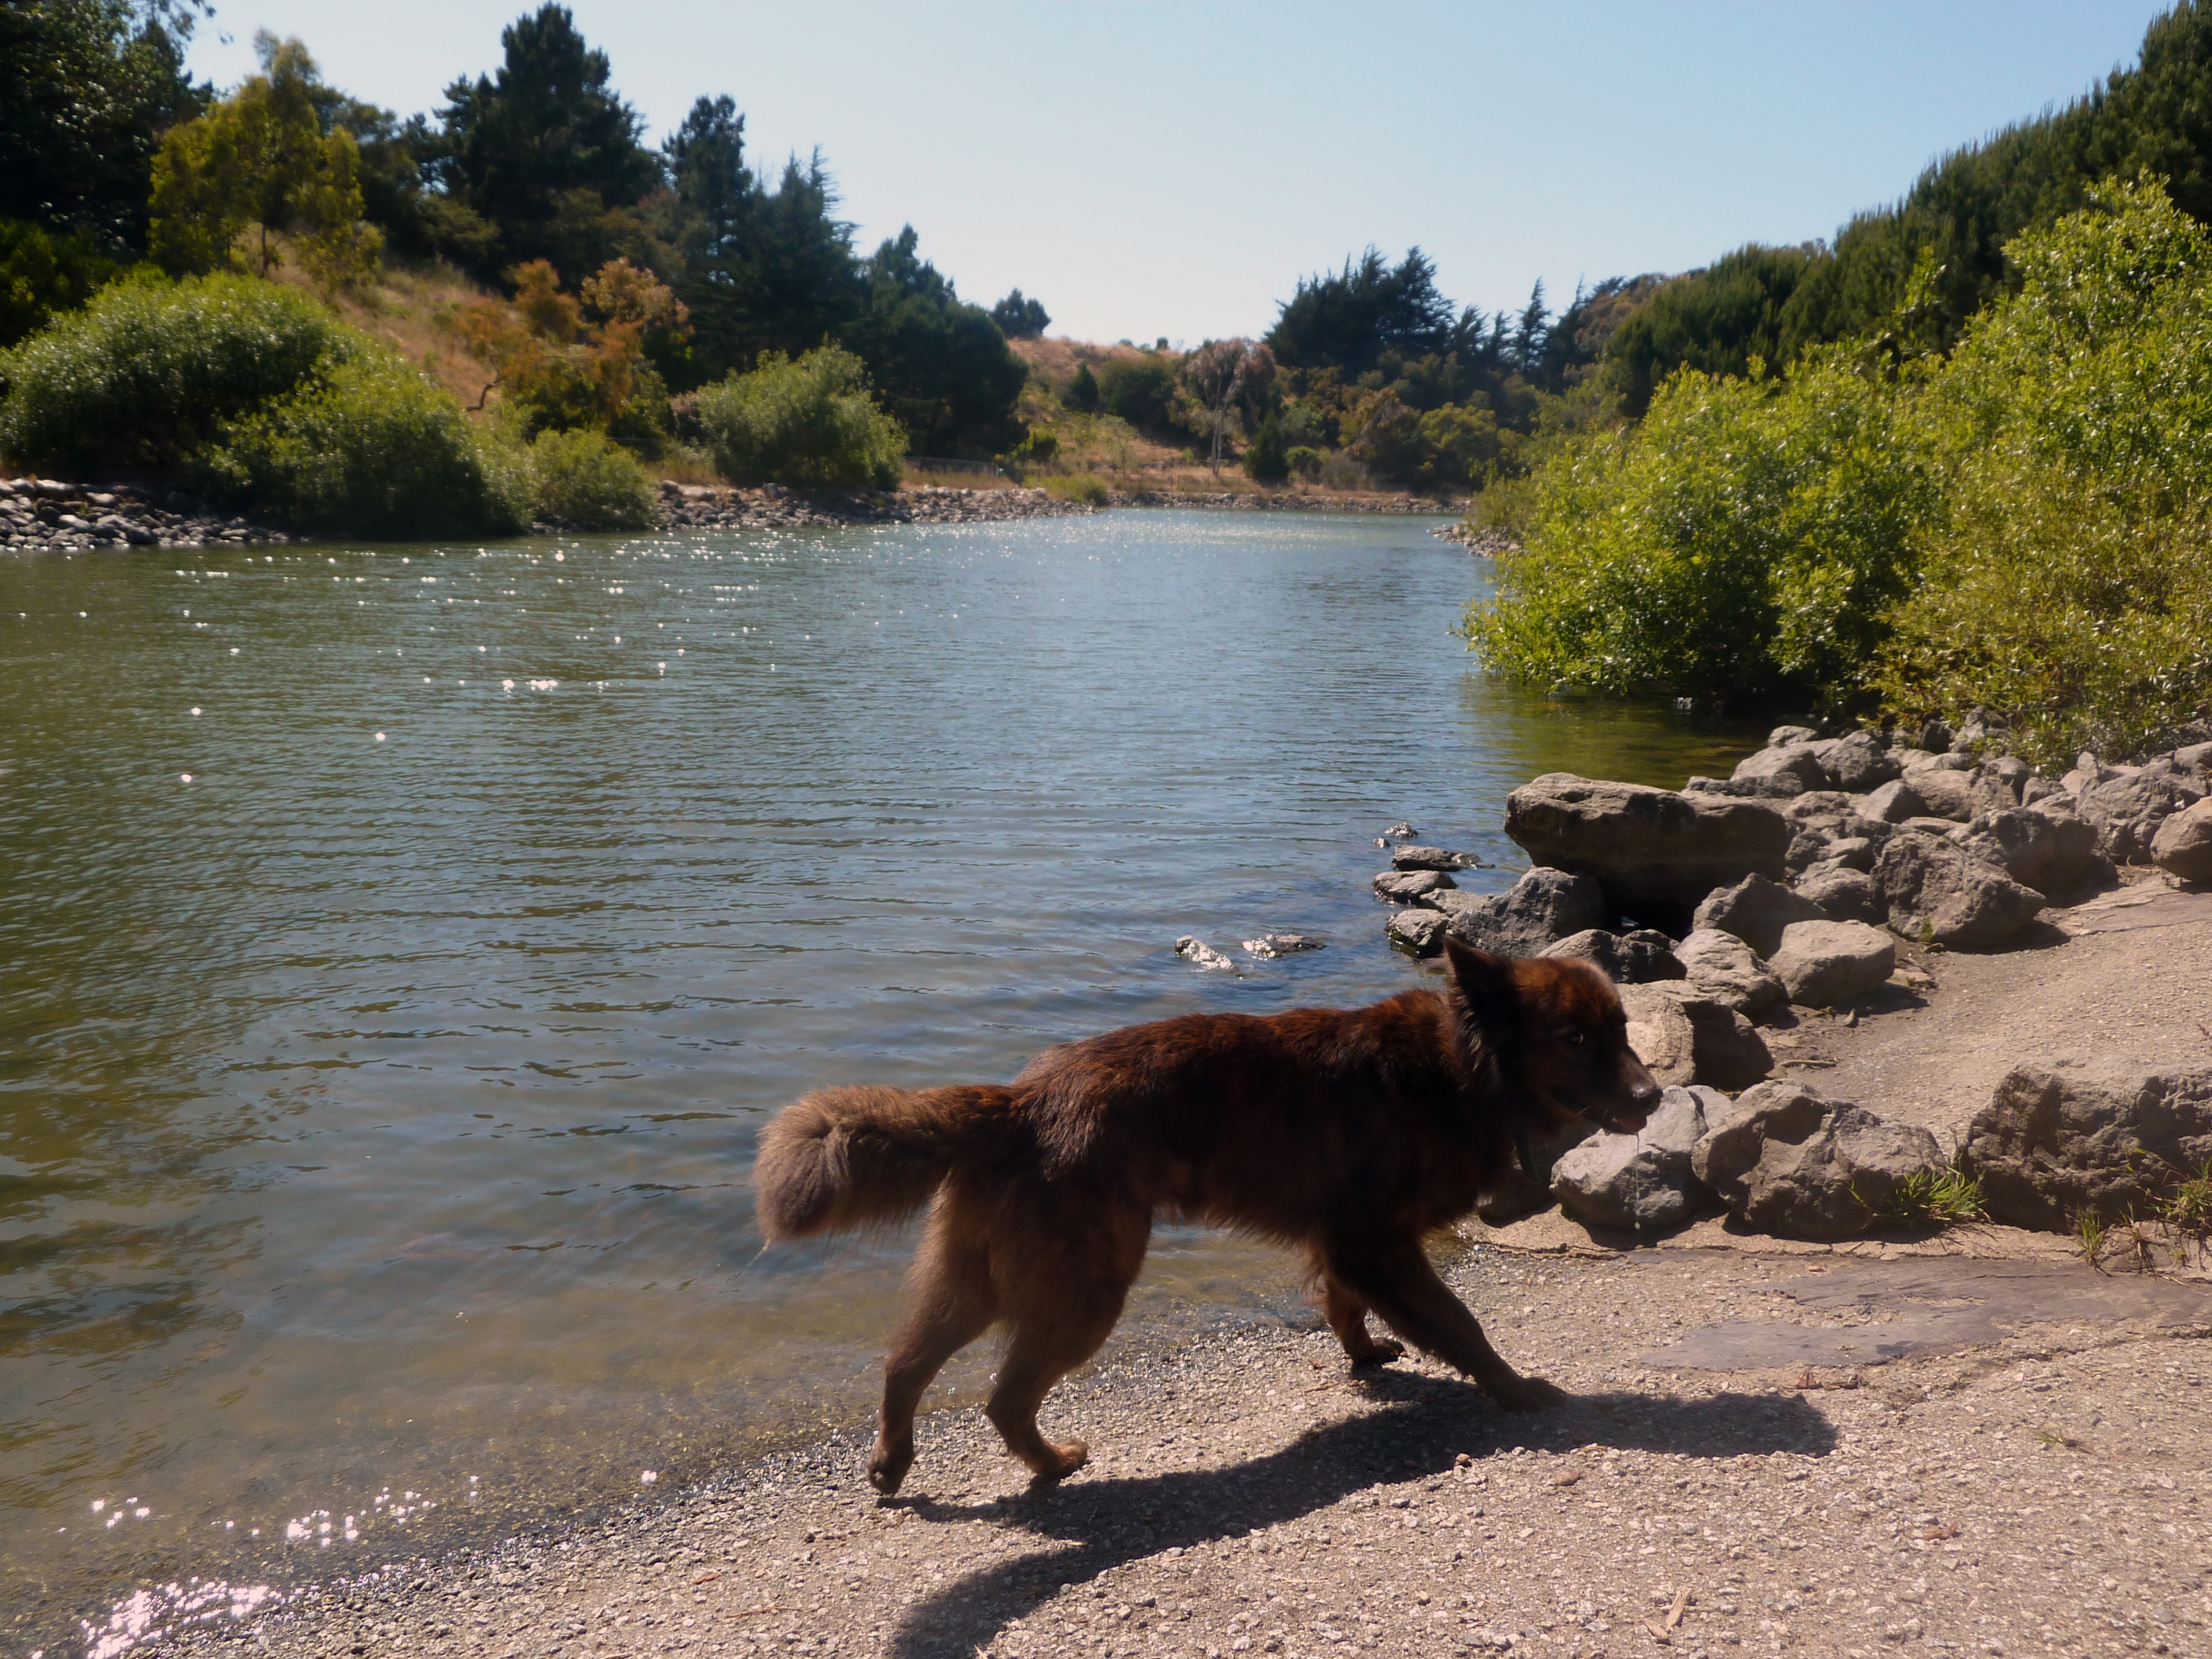 McLaren Park boasts a pond that only a dog could love.  (photo by D. Speredelozzi)